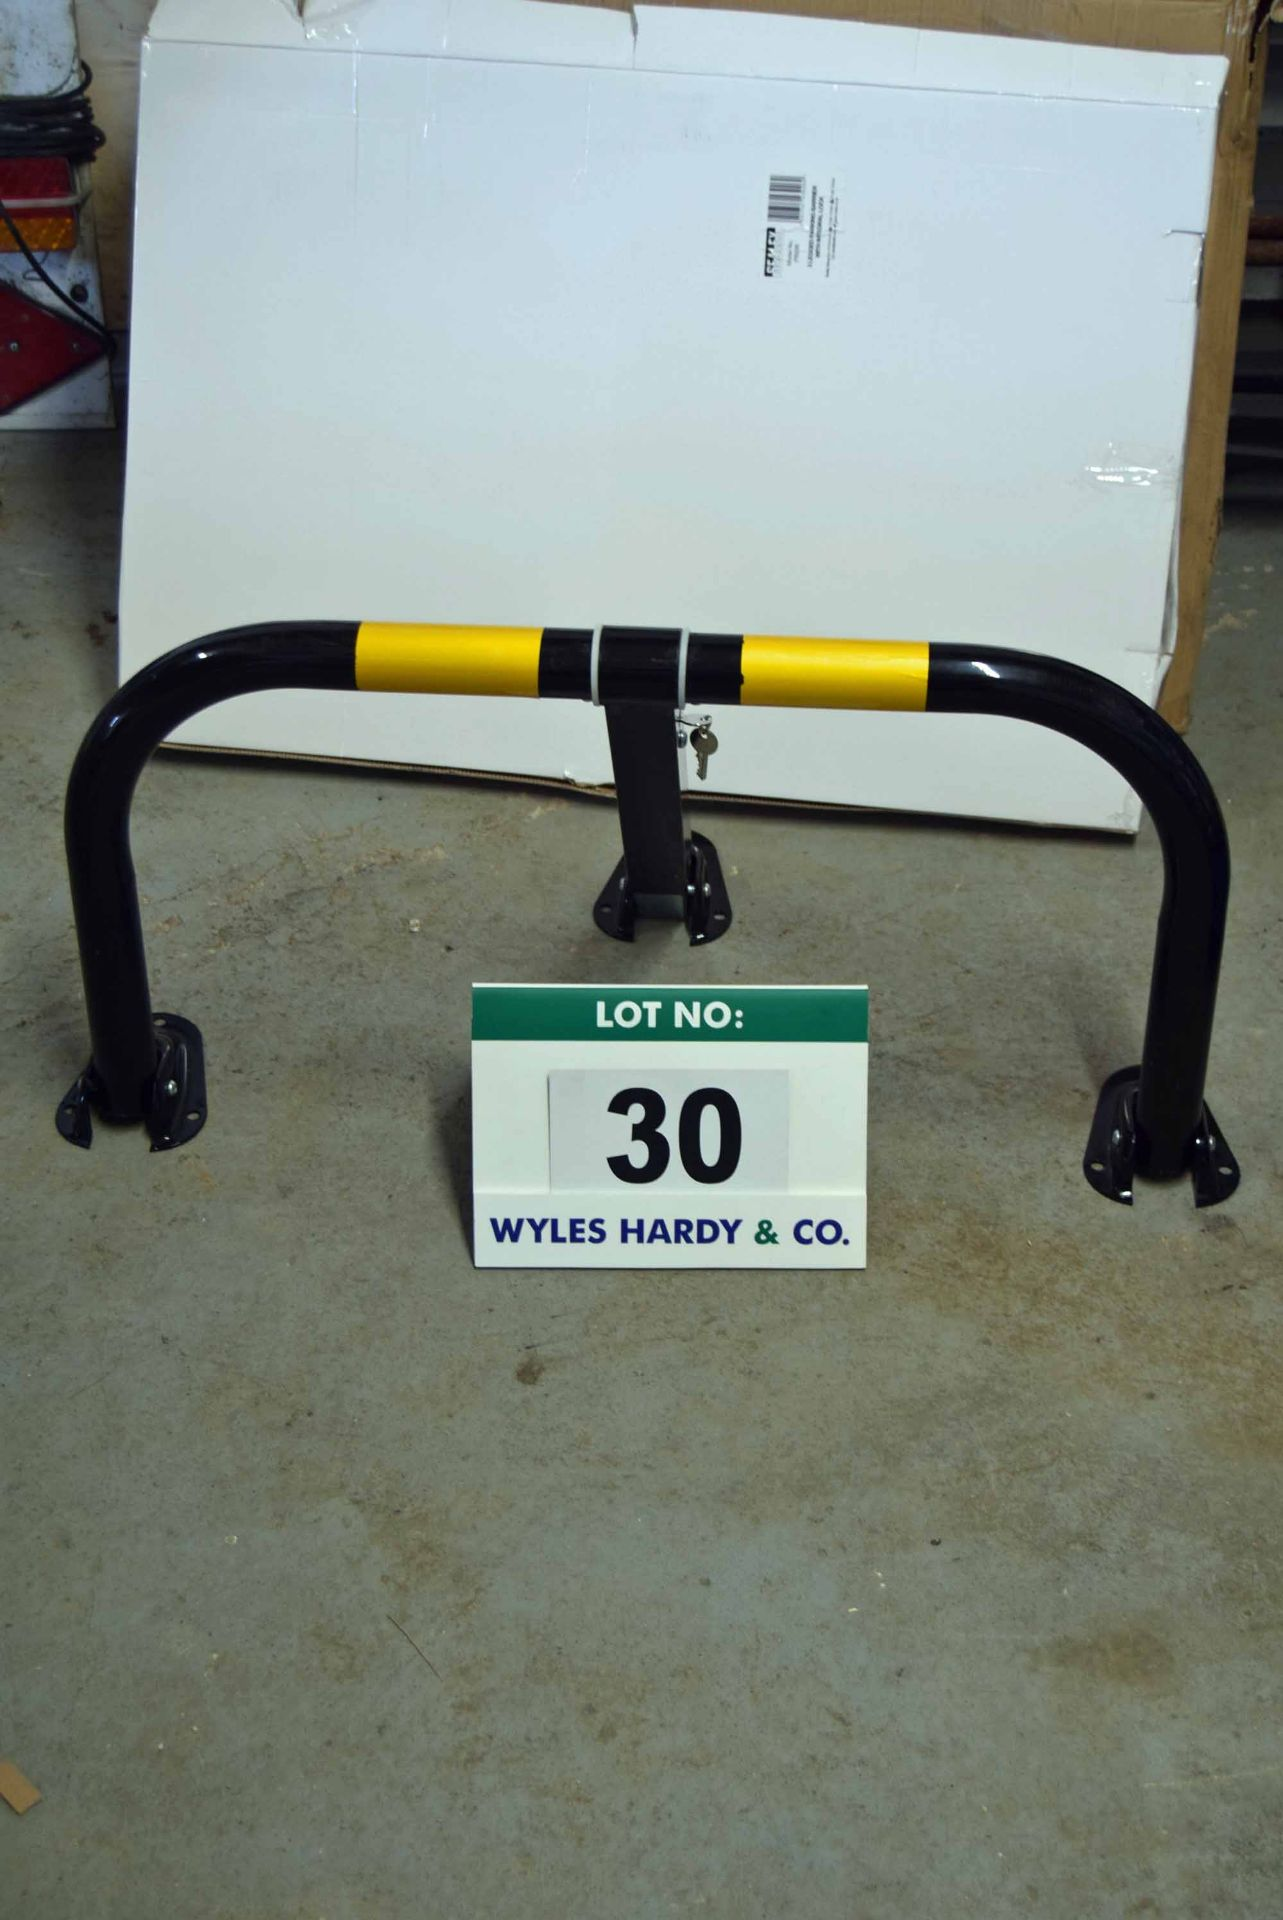 Lot 30 - Two Sets of Two SEALEY Model PB298 Parking Barriers (Boxed and Unused)